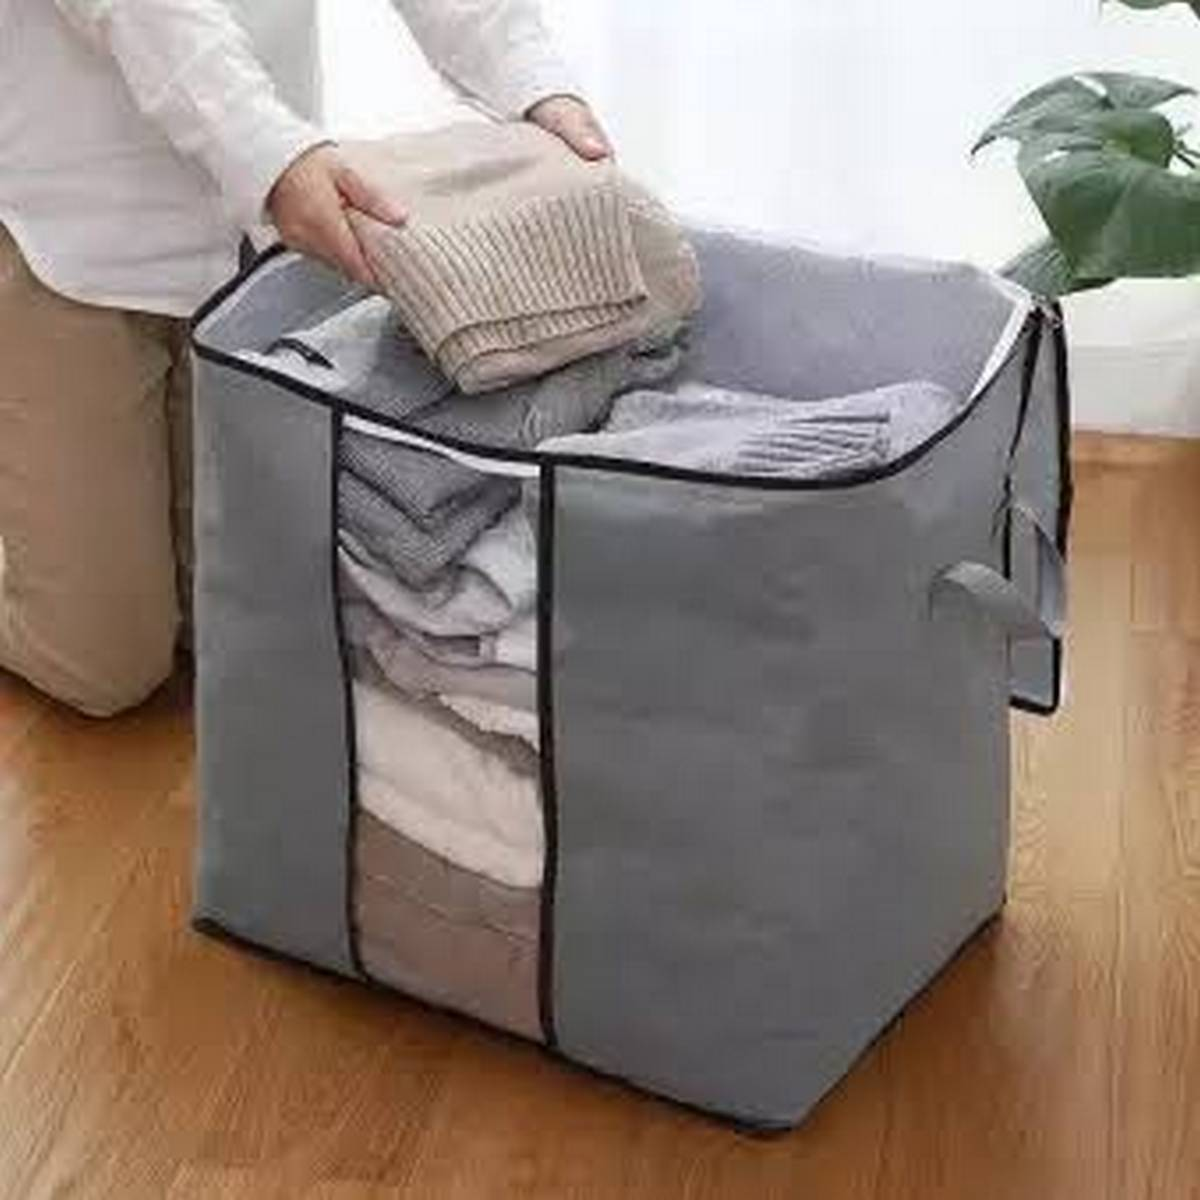 Suitcase Clothes Blanket Organizer Foldable Bamboo Charcoal Storage Bag Clear Travel Luggage Organizer Bag